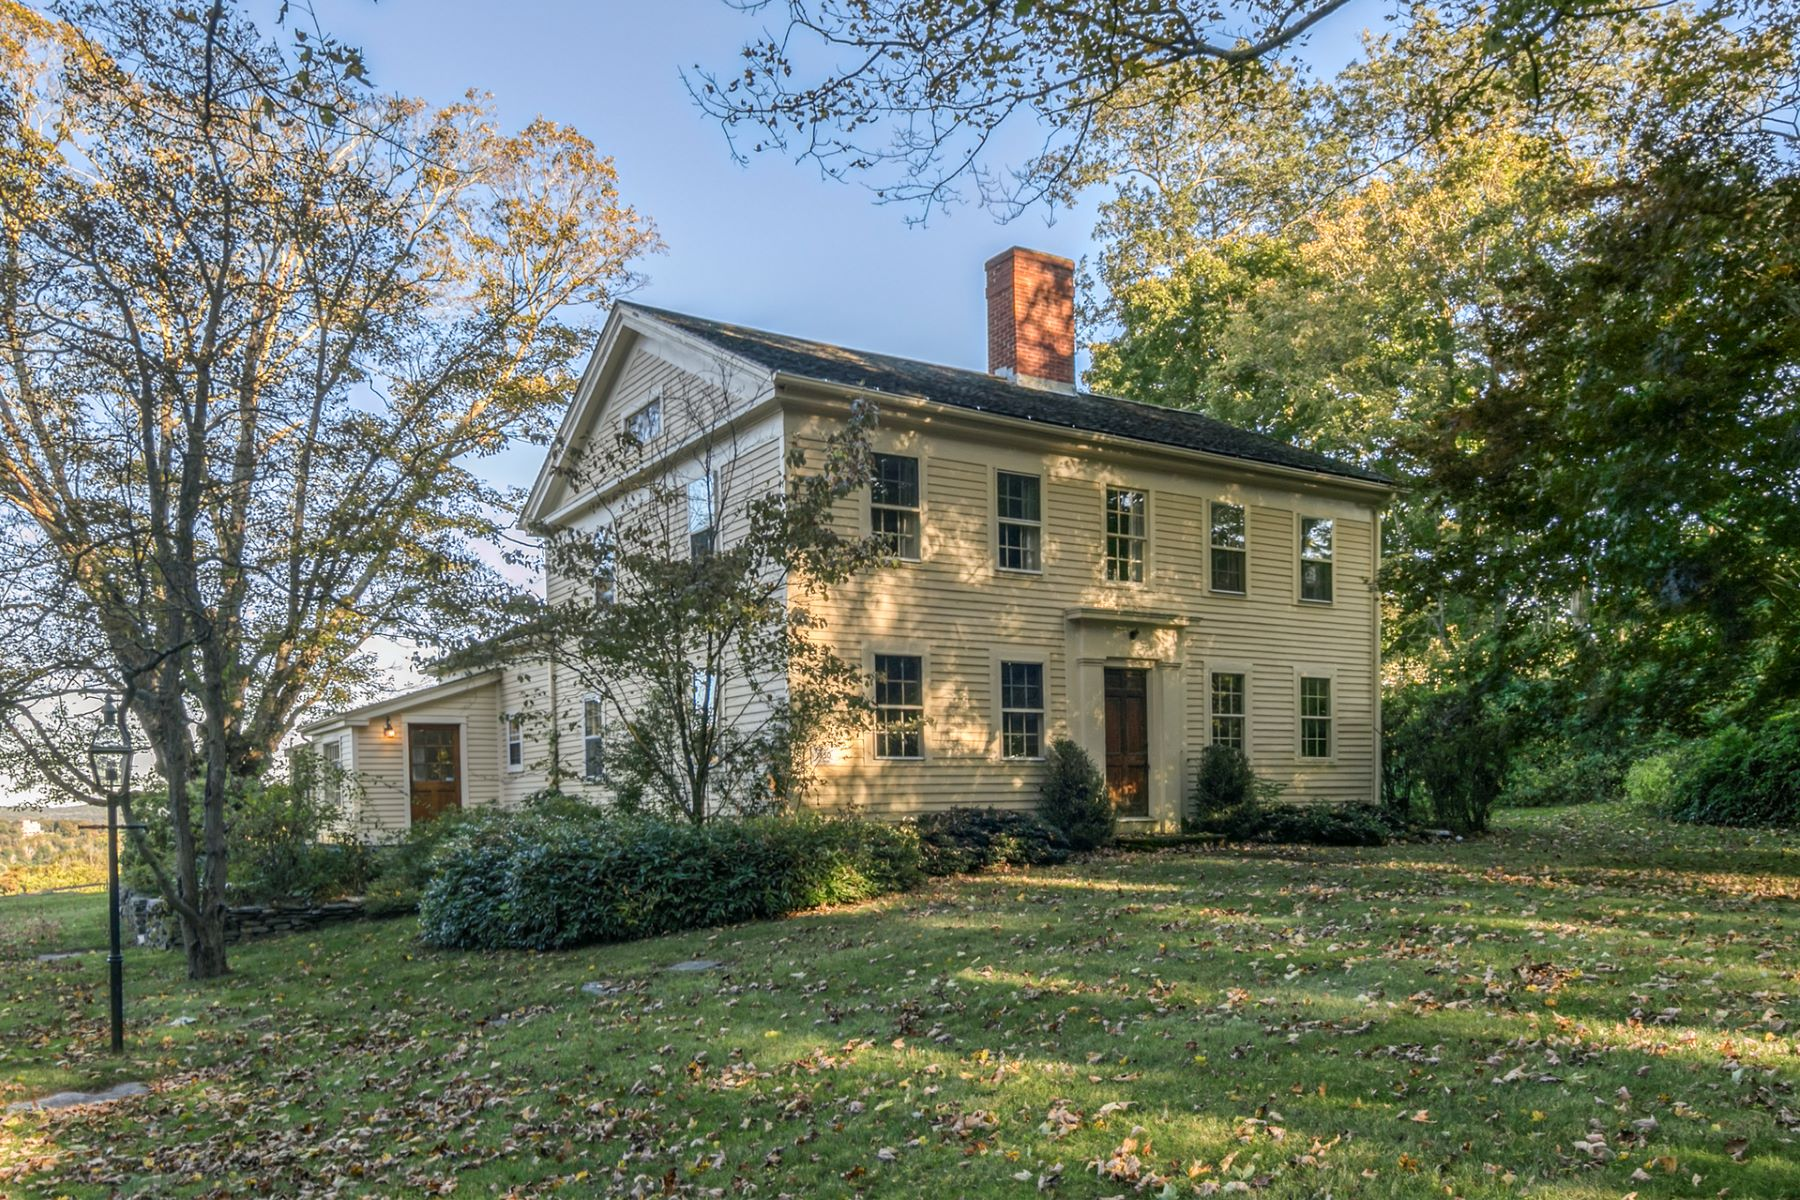 Single Family Homes for Sale at Quintessential New England 1850 Colonial 80 Goose Hill Road Chester, Connecticut 06412 United States